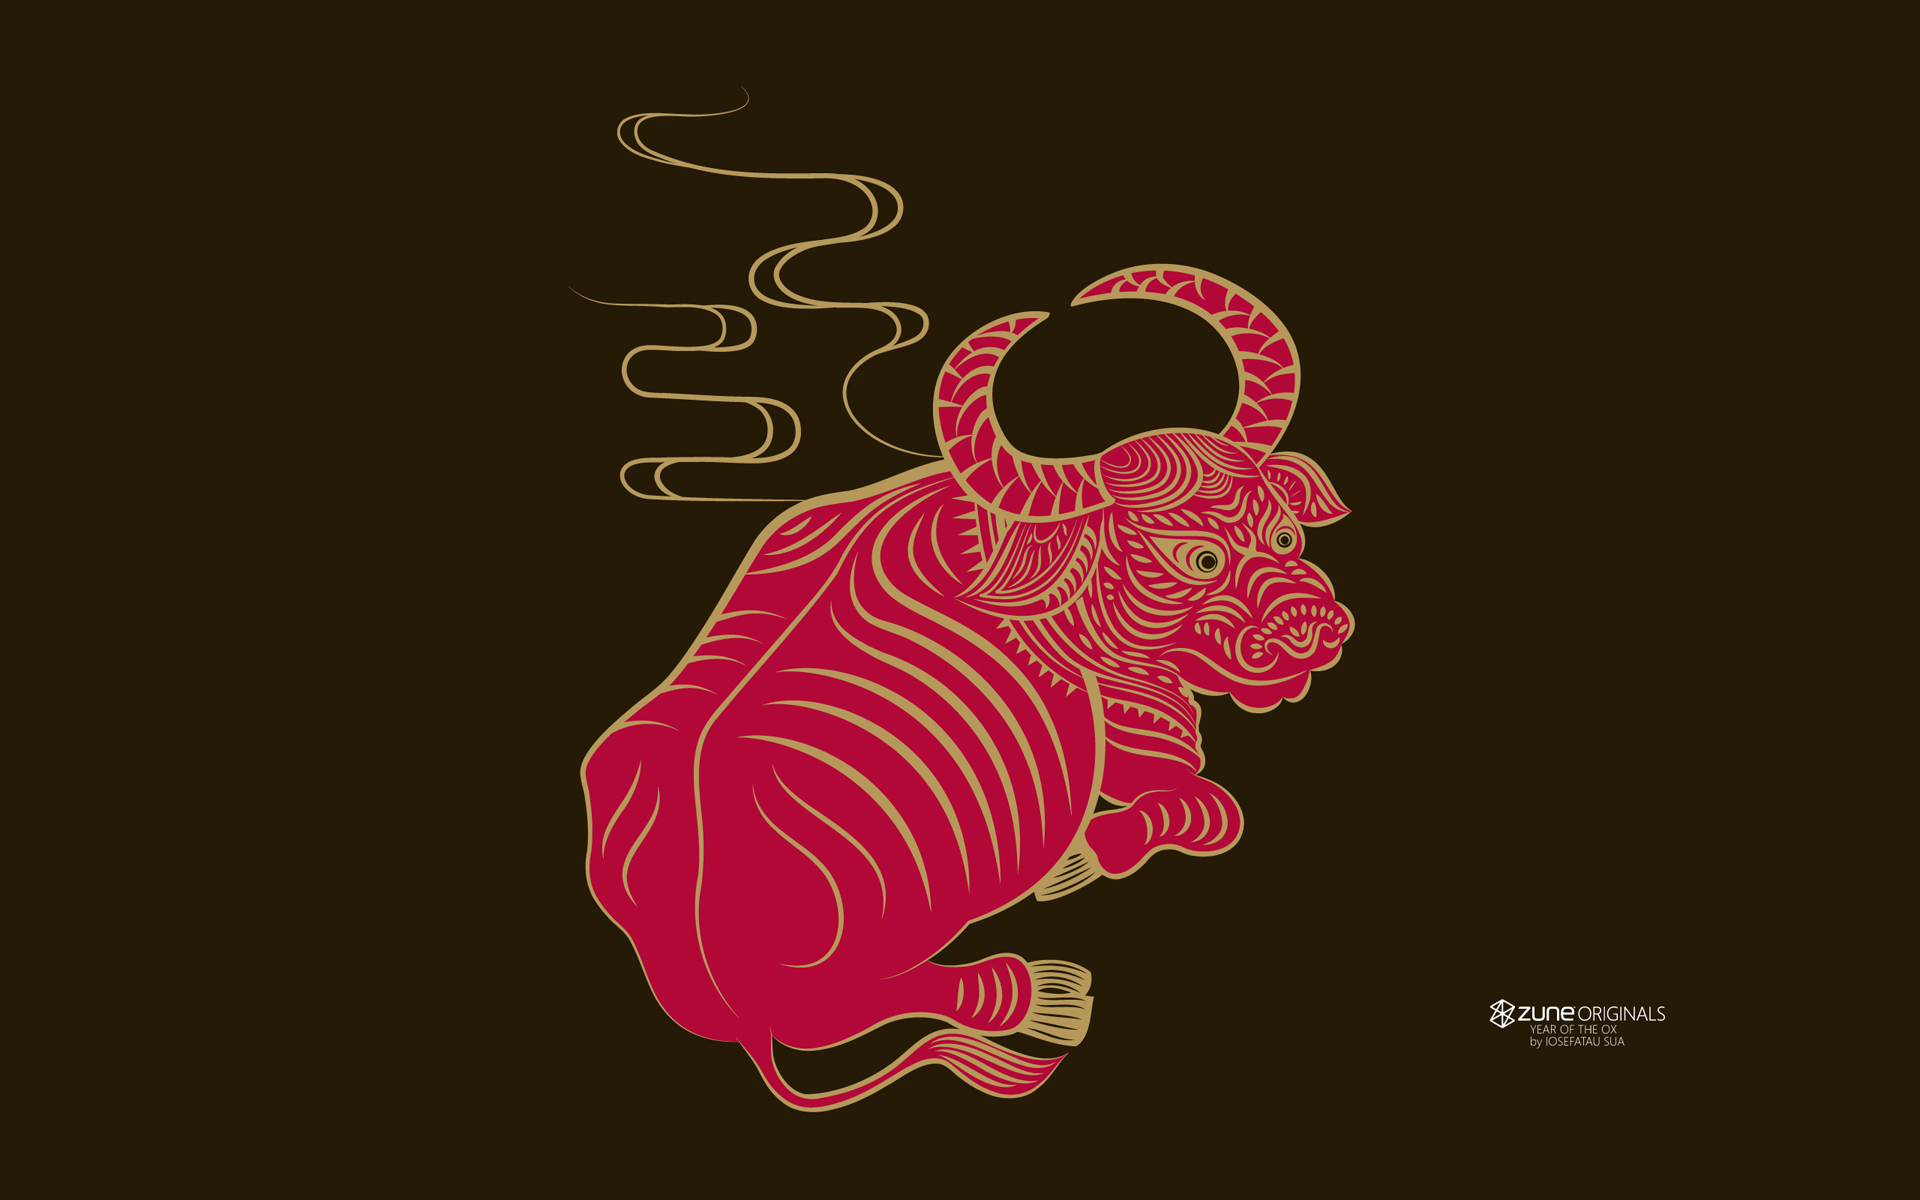 products zune zodiac cow wallpaper